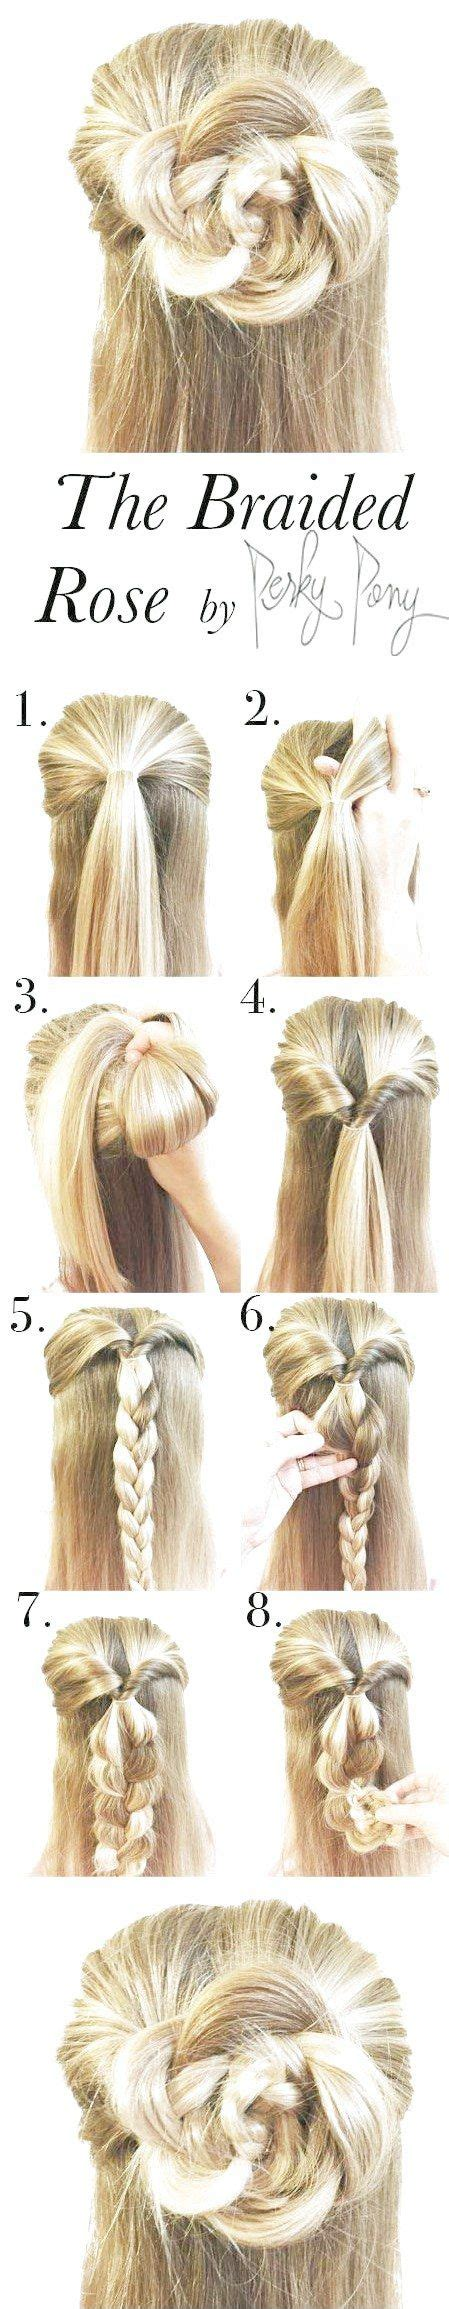 8 Types of Braids You Didn t Know Existed Braided half